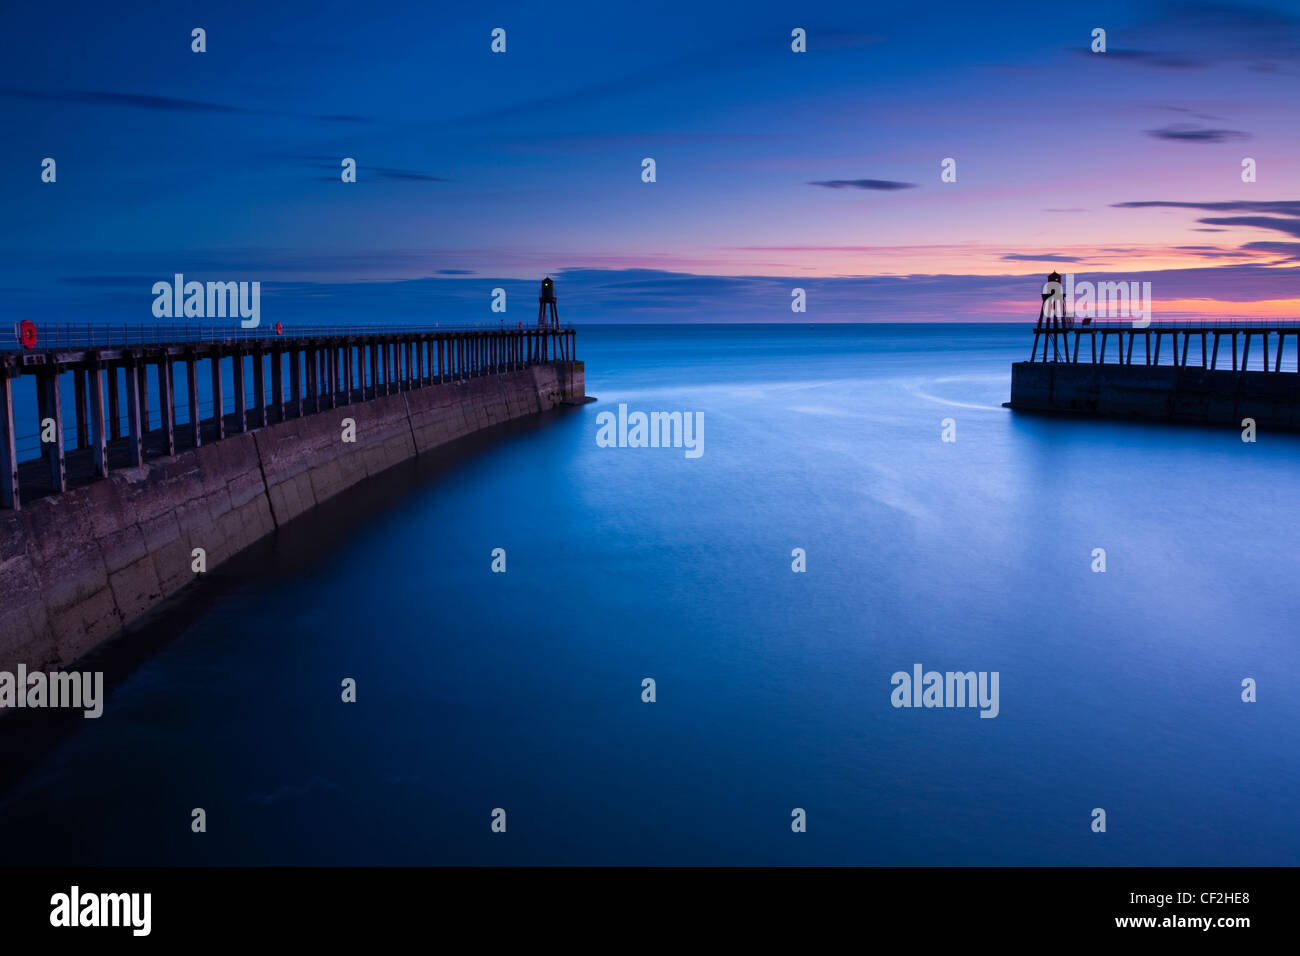 The entrance piers of Whitby Harbour at dawn. - Stock Image